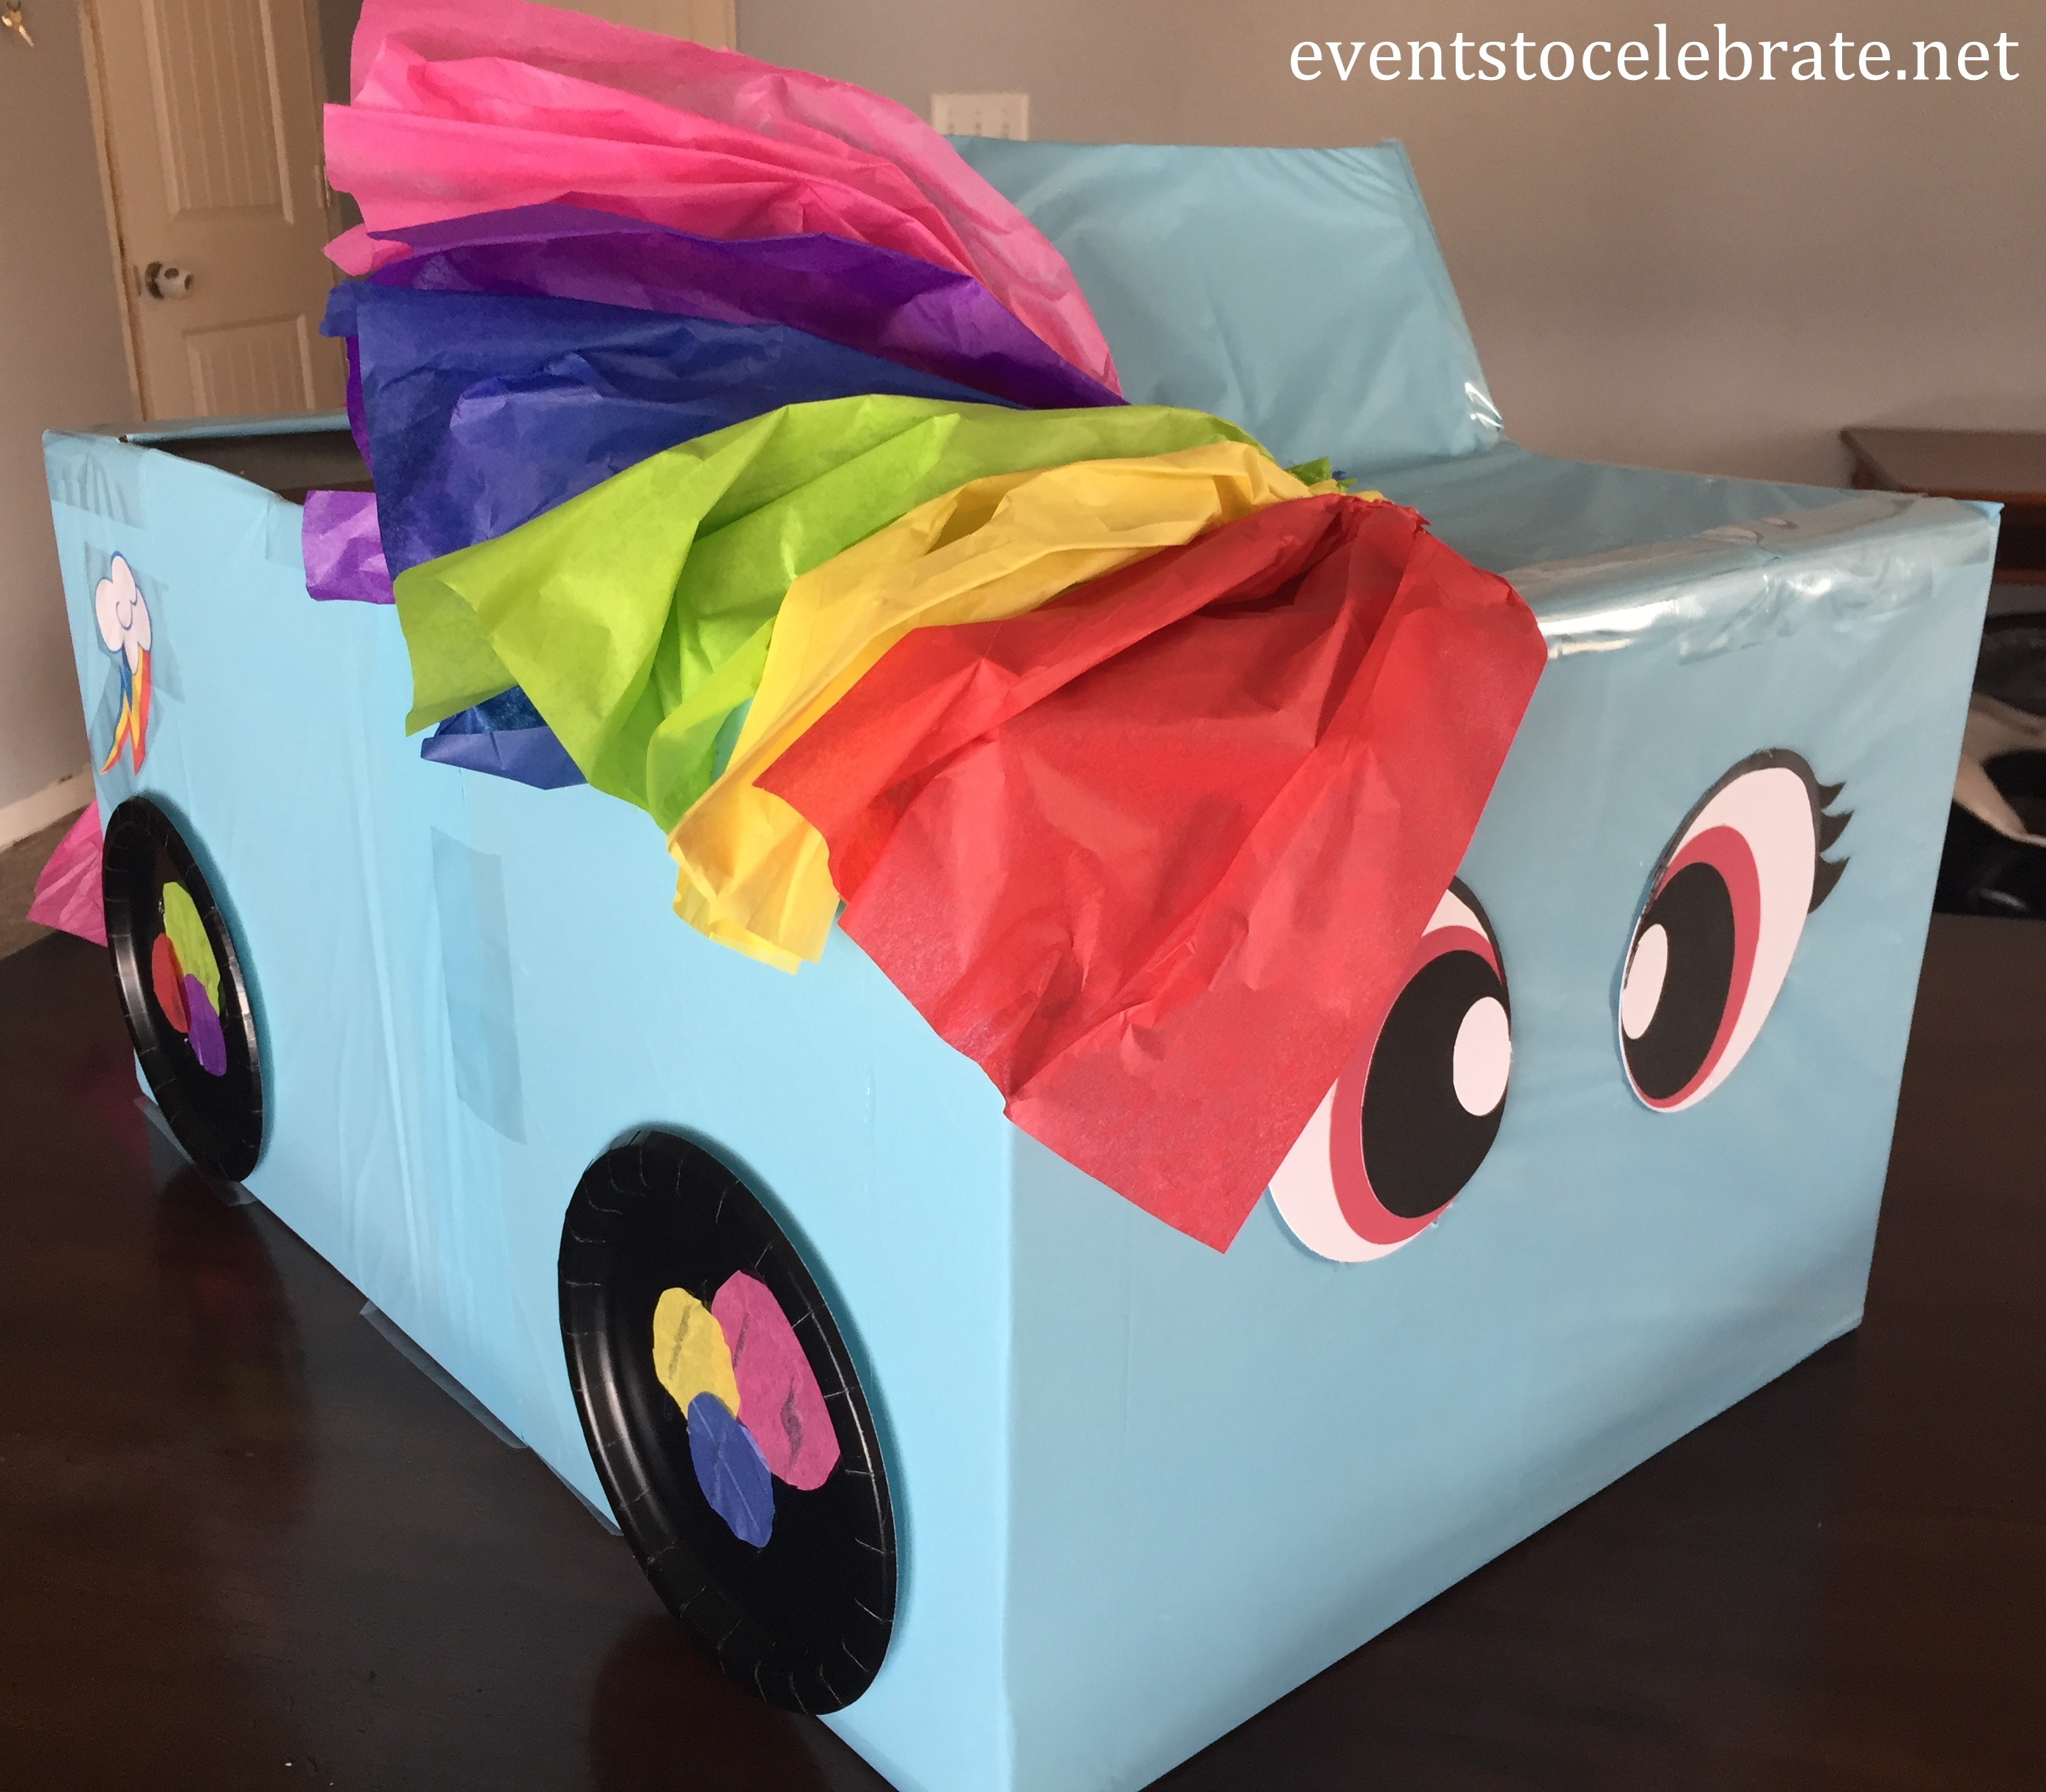 Kindy 500 Car Rainbow Dash - eventstocelebrate.net